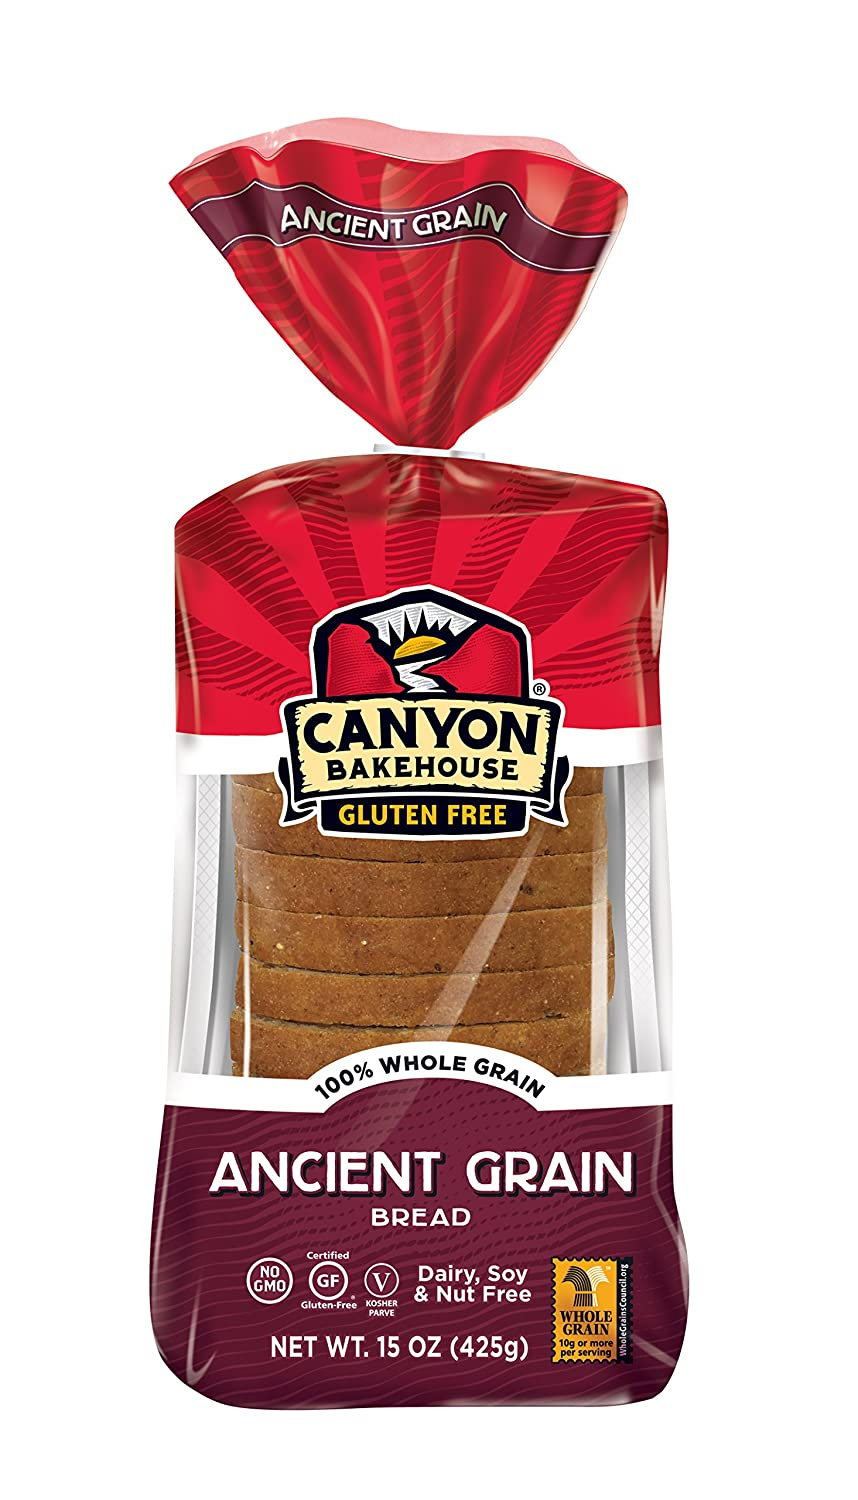 CANYON BAKEHOUSE Ancient Grain Gluten-Free Bread - Case of 6 Loaves